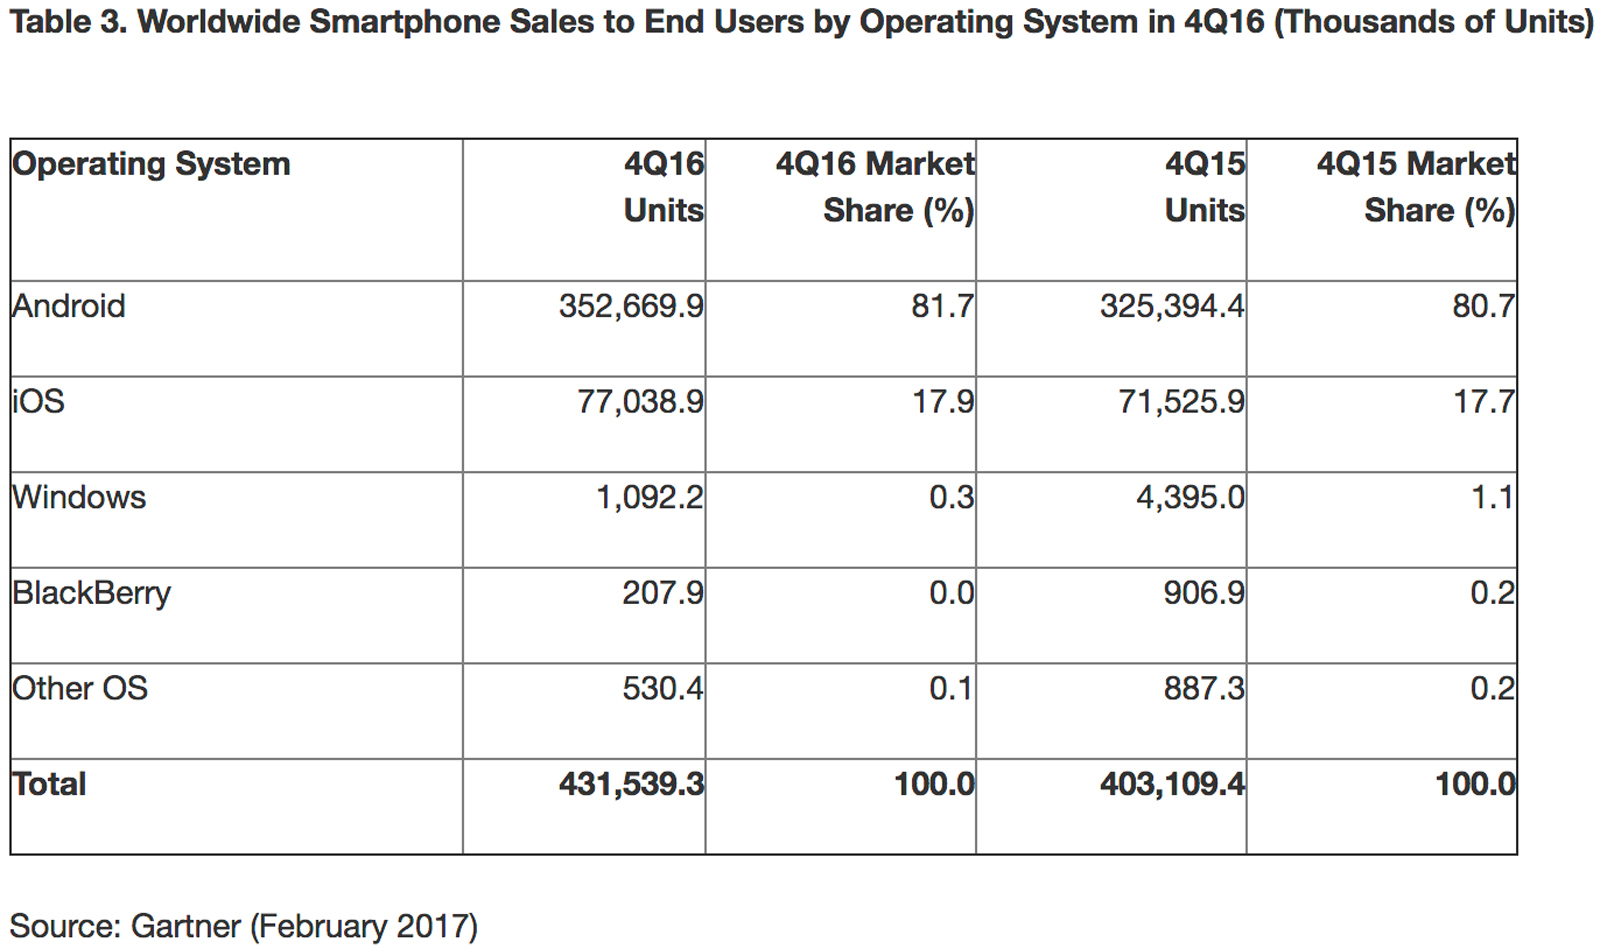 Smartphone OS market share in Q4 2016